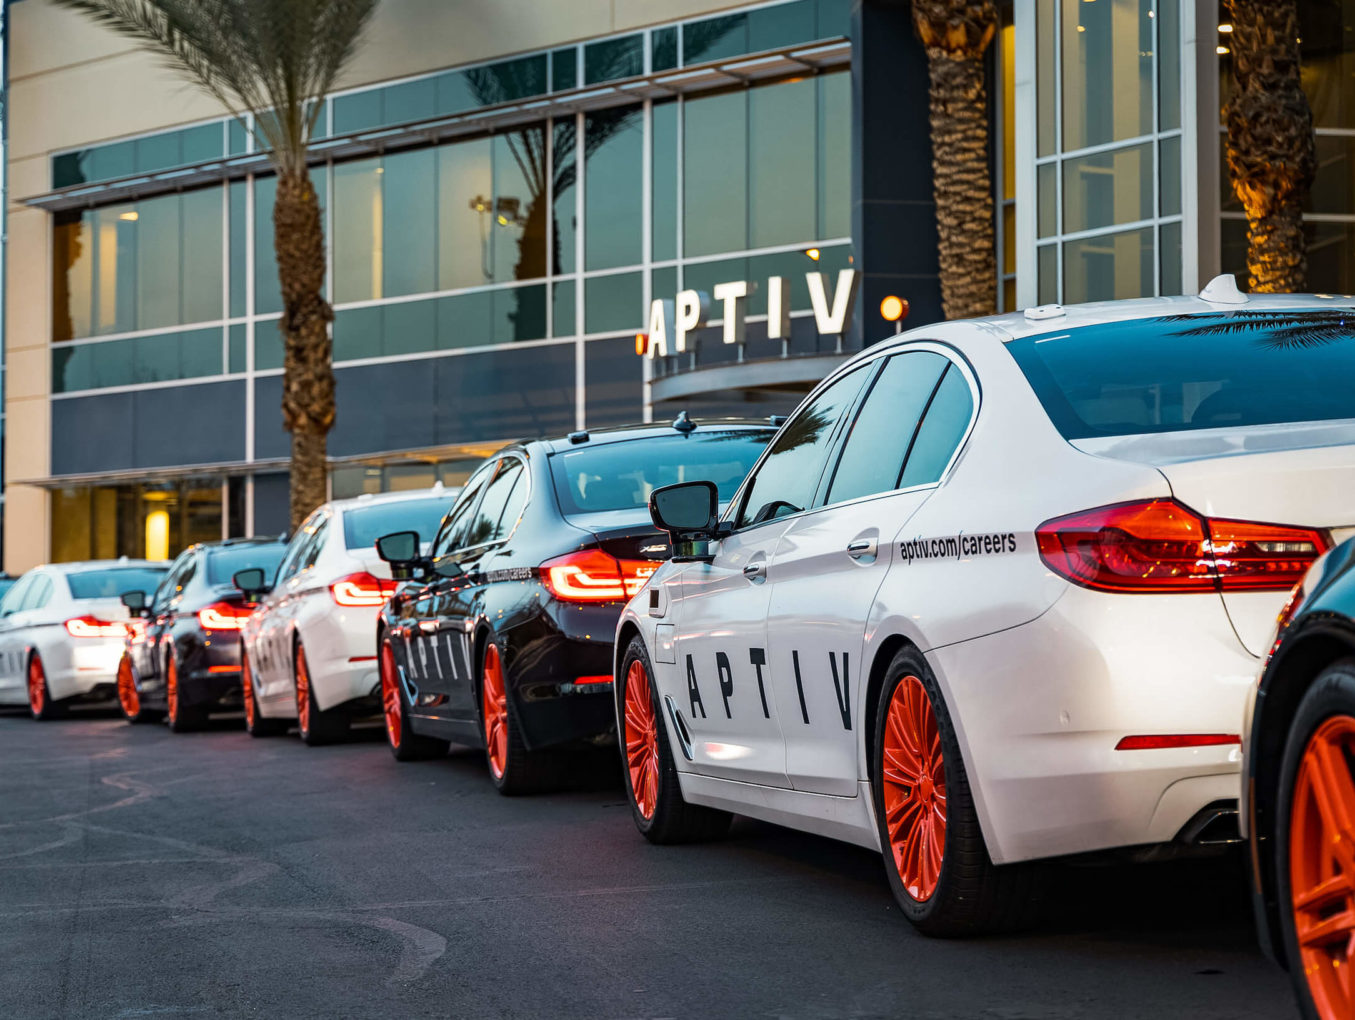 Aptiv car las vegas